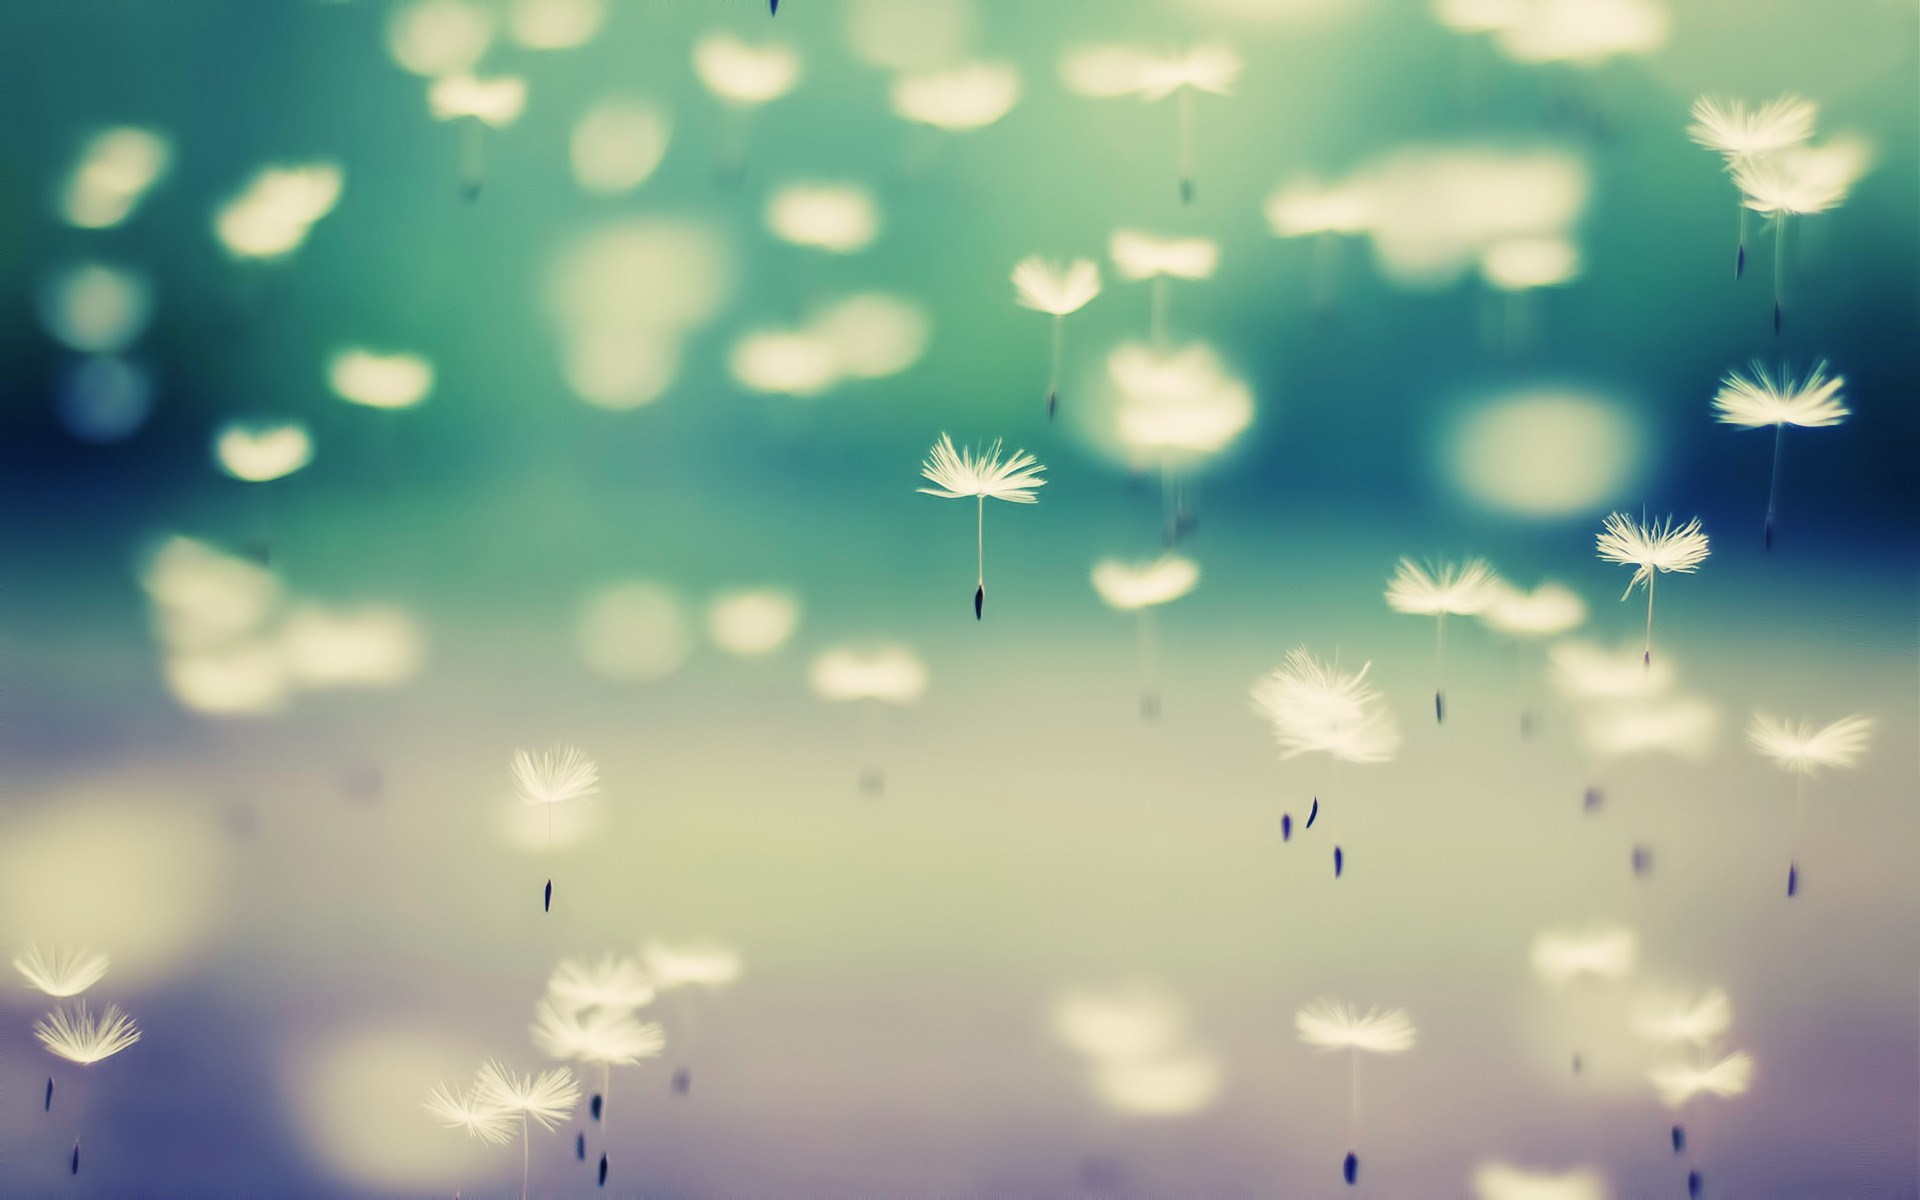 Cool Dandelion Seeds Wallpaper 42643 2560x1600 px